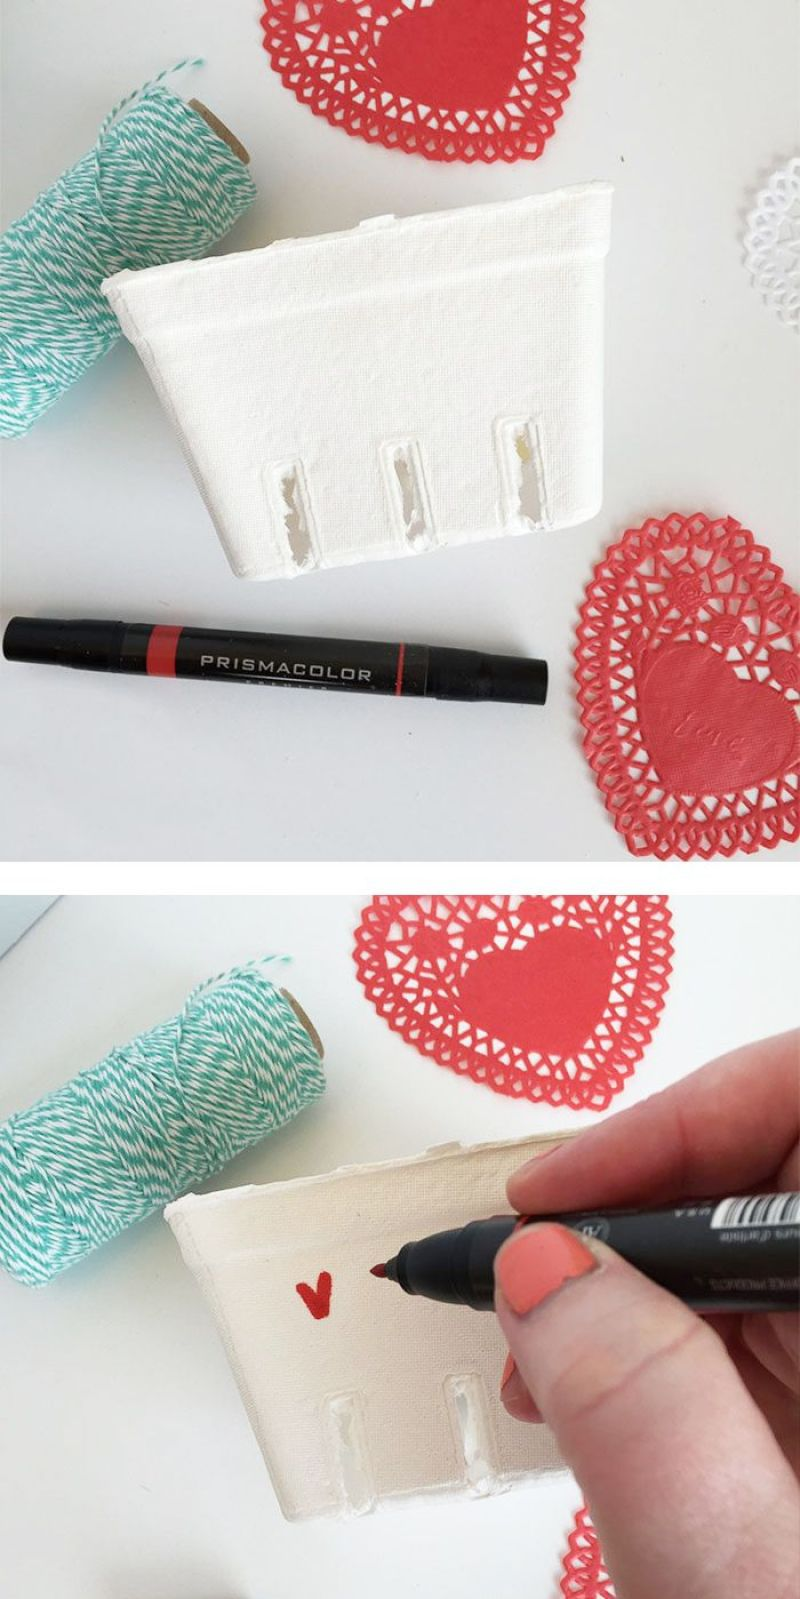 How To Decorate A Box for Valentines Day by Lindi Haws of Love The Day!